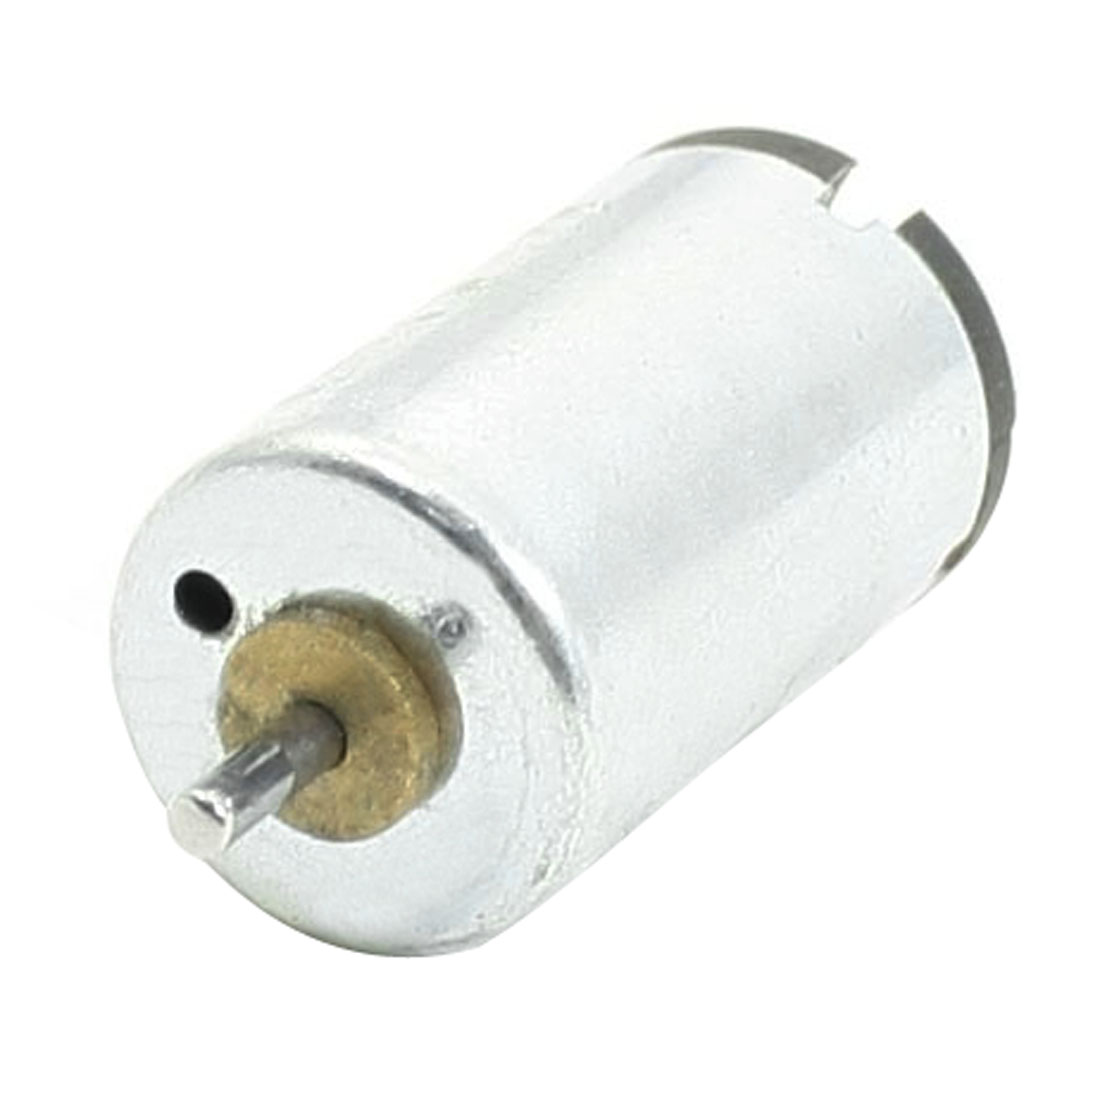 1-5mm-Shaft-Cylinder-Shape-2-Pin-DC-Toy-Motor-DC-3-6V-1000RPM